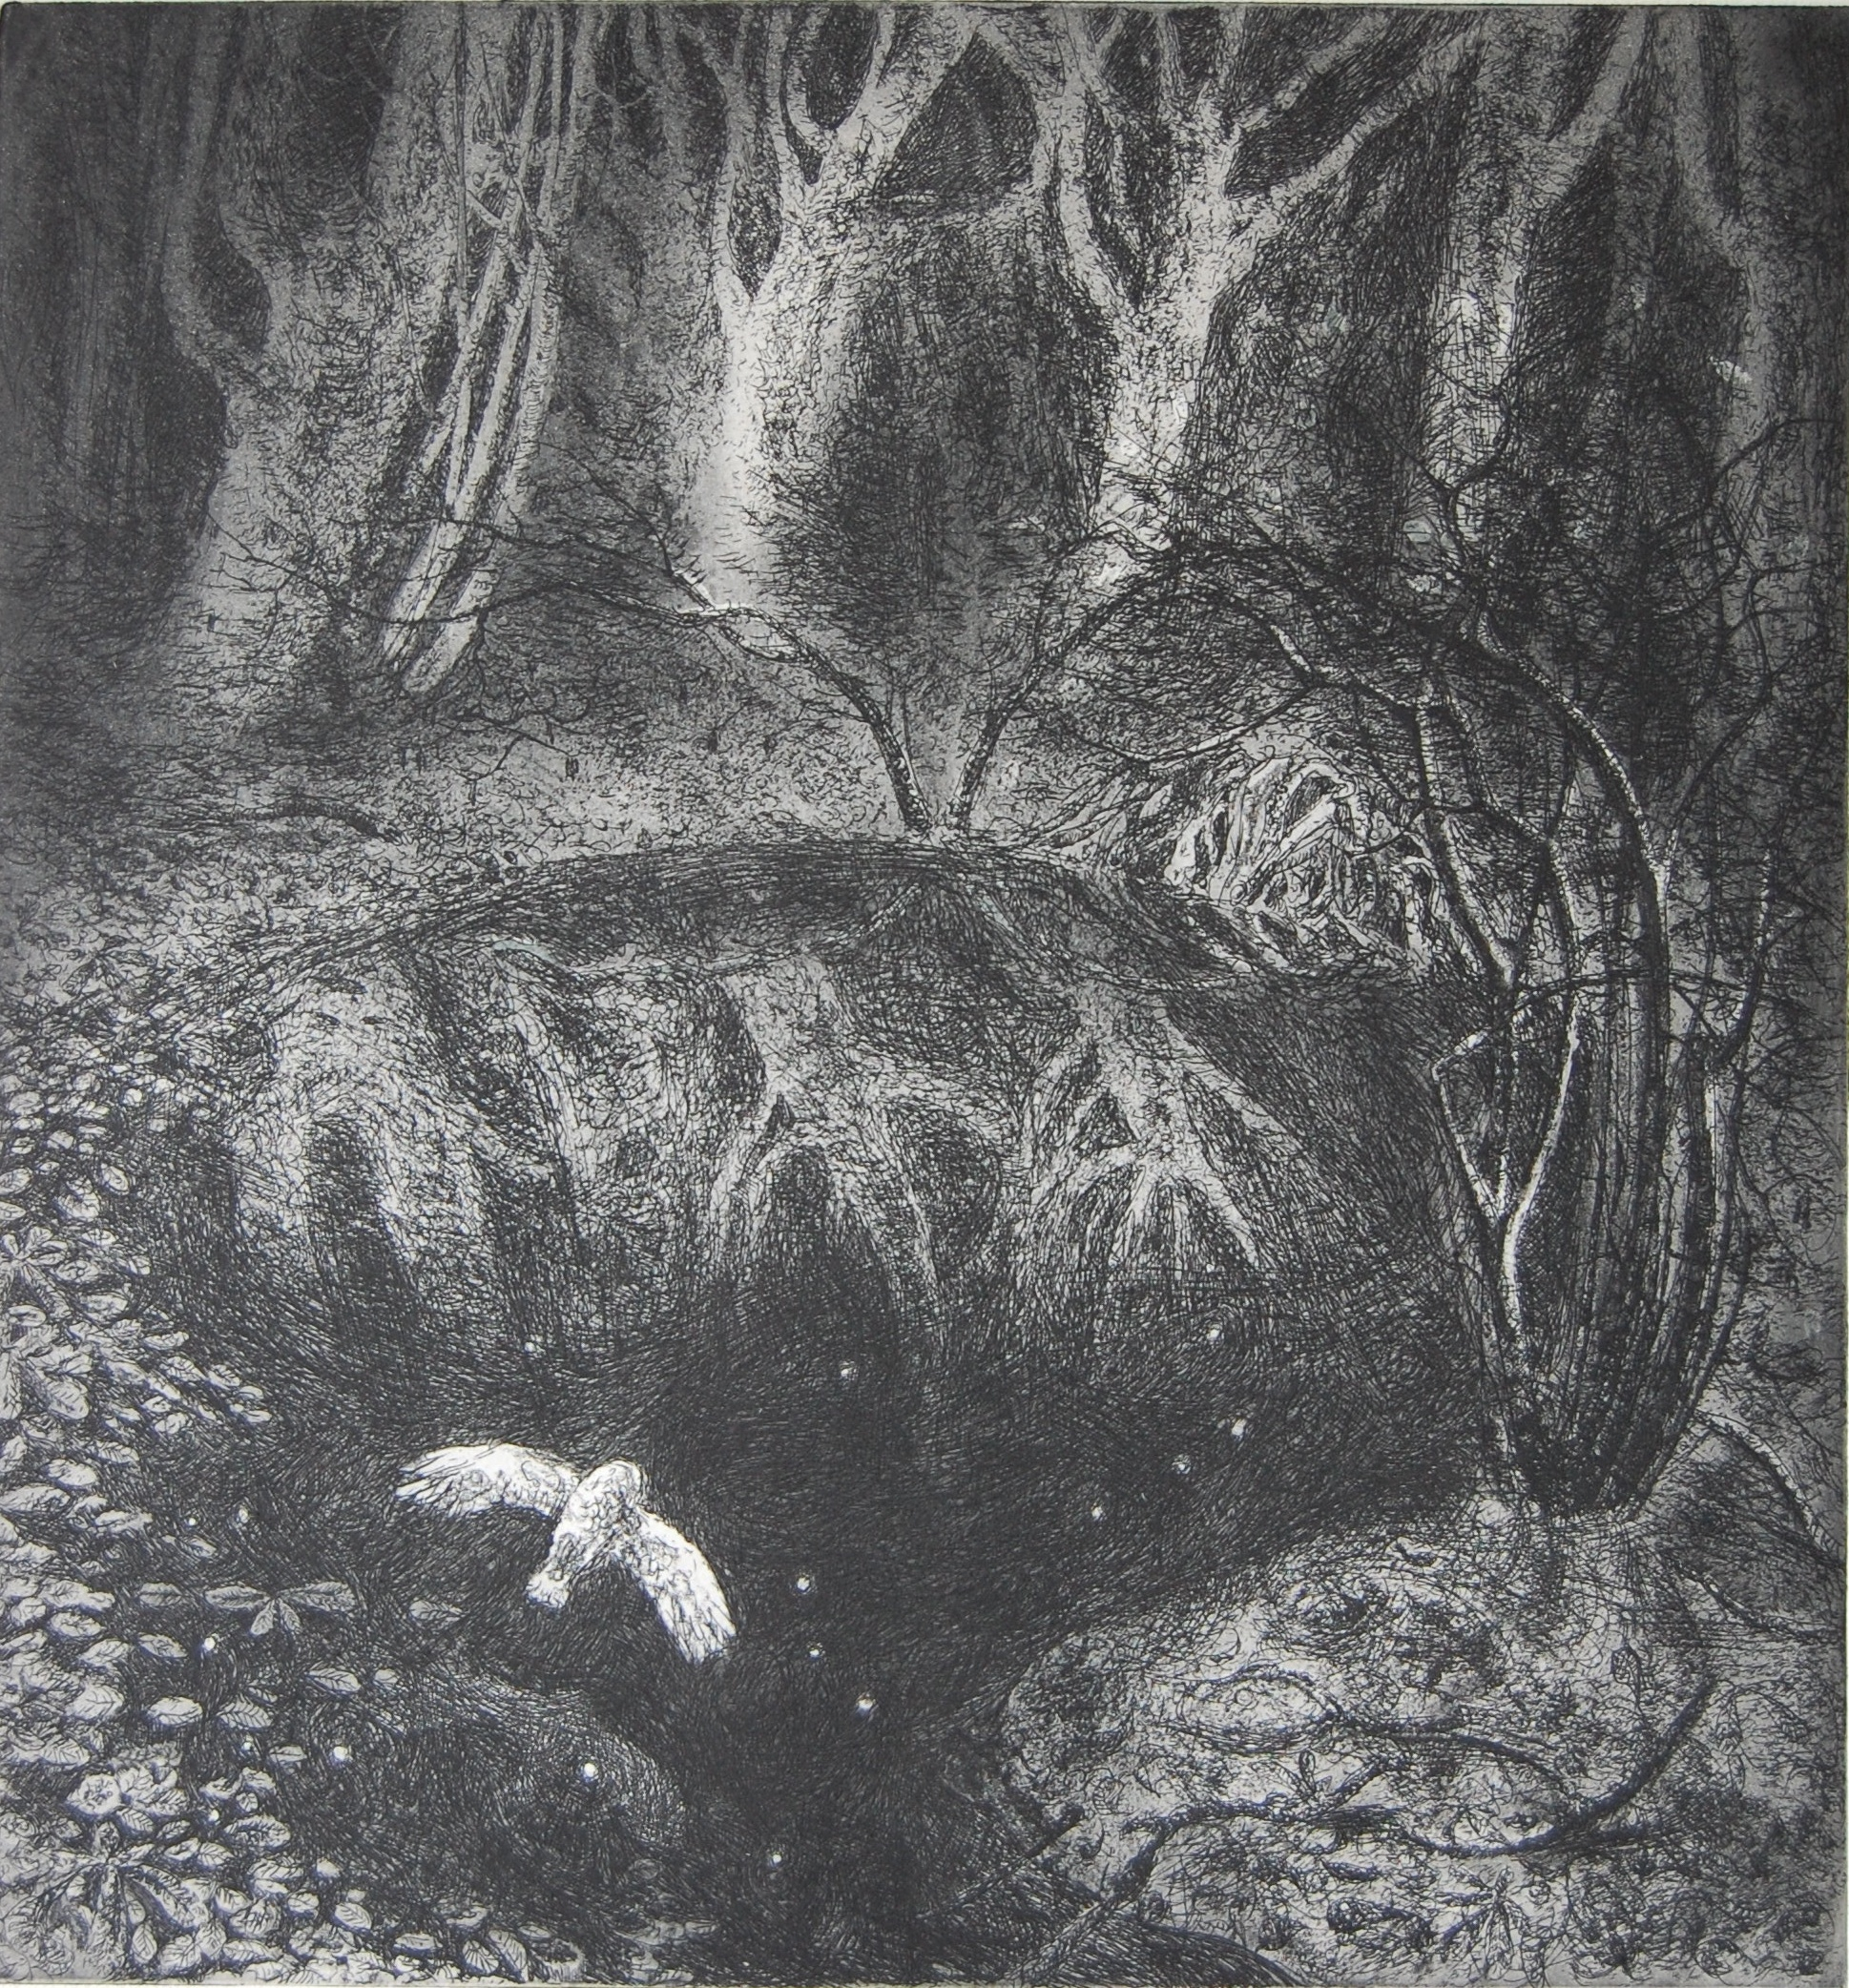 Leaves and Stars  Etching  27 x 29 cm  £230 (Framed)  £180 (Unframed)